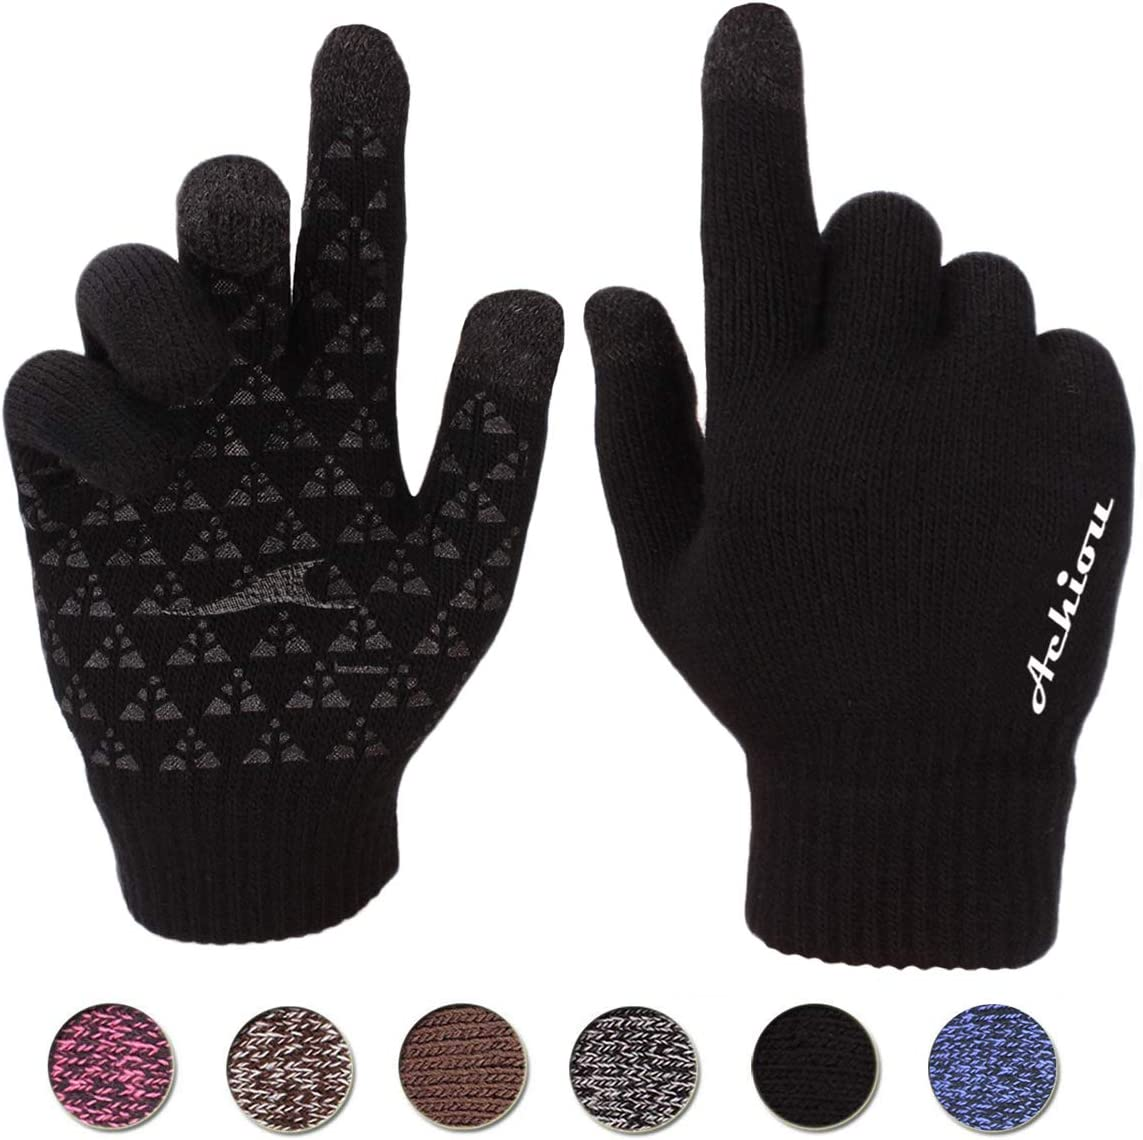 Set of 12 Large Magic Gloves with Texting Tips for Men